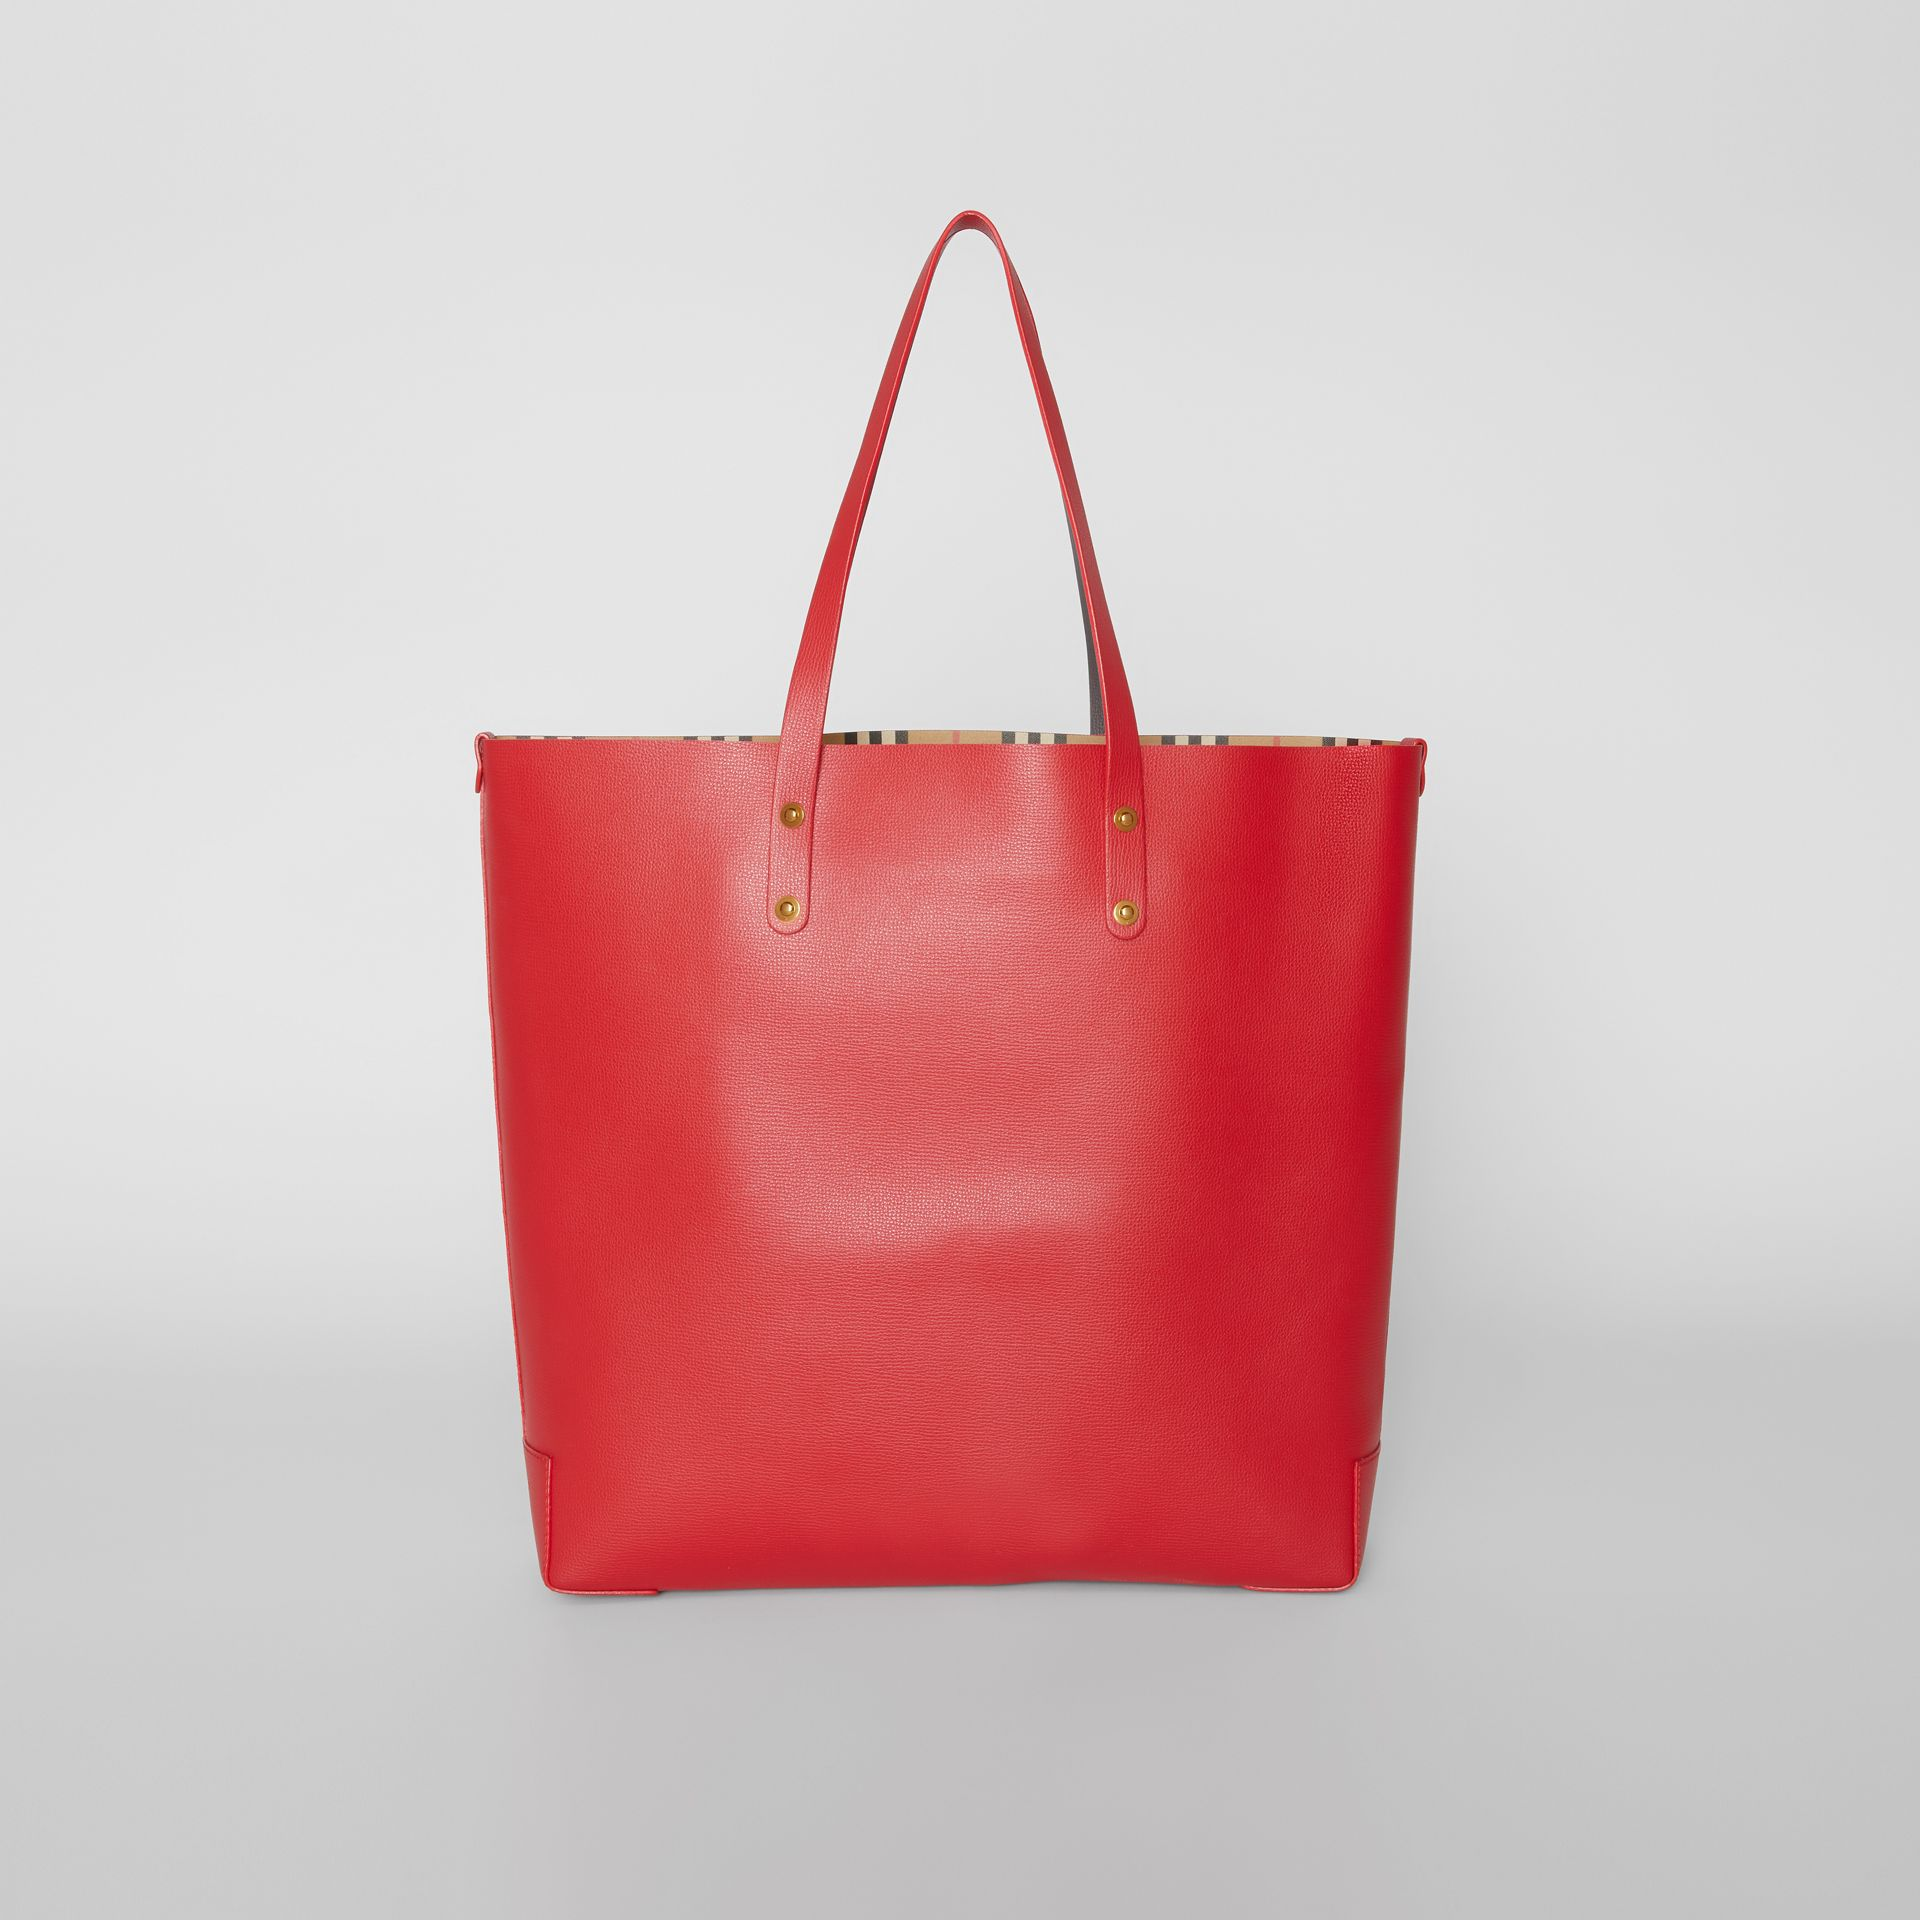 Embossed Crest Leather Tote in Rust Red - Women | Burberry United States - gallery image 7